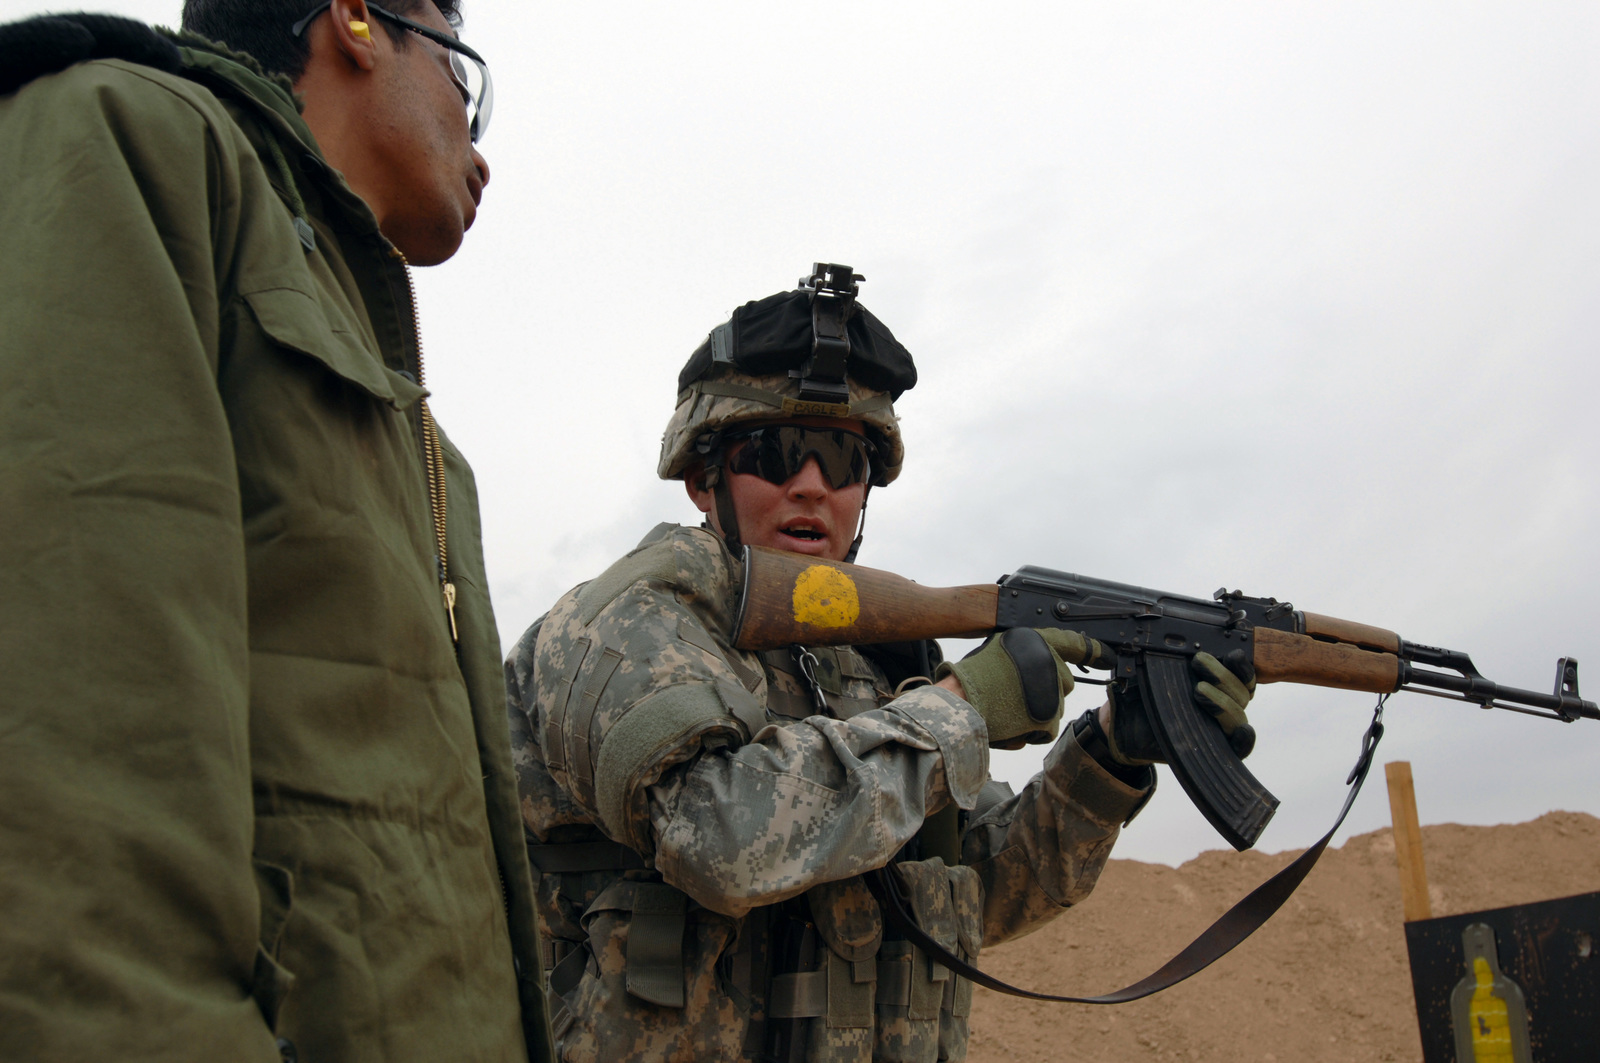 U.S. Army SPECIALIST Toby Cagle, from Headquarters Headquarters Company, 1-327th Infantry Regiment, 101st Airborne Division, Fort Campbell, KY, shows an Iraqi Army soldiers the proper way to hold the weapon during Close Quarters Combat training, on Forward Operating Base McHenry, Iraq, on Jan. 2, 2006. (U.S. Army photo by SPC Timothy Kingston) (Released)